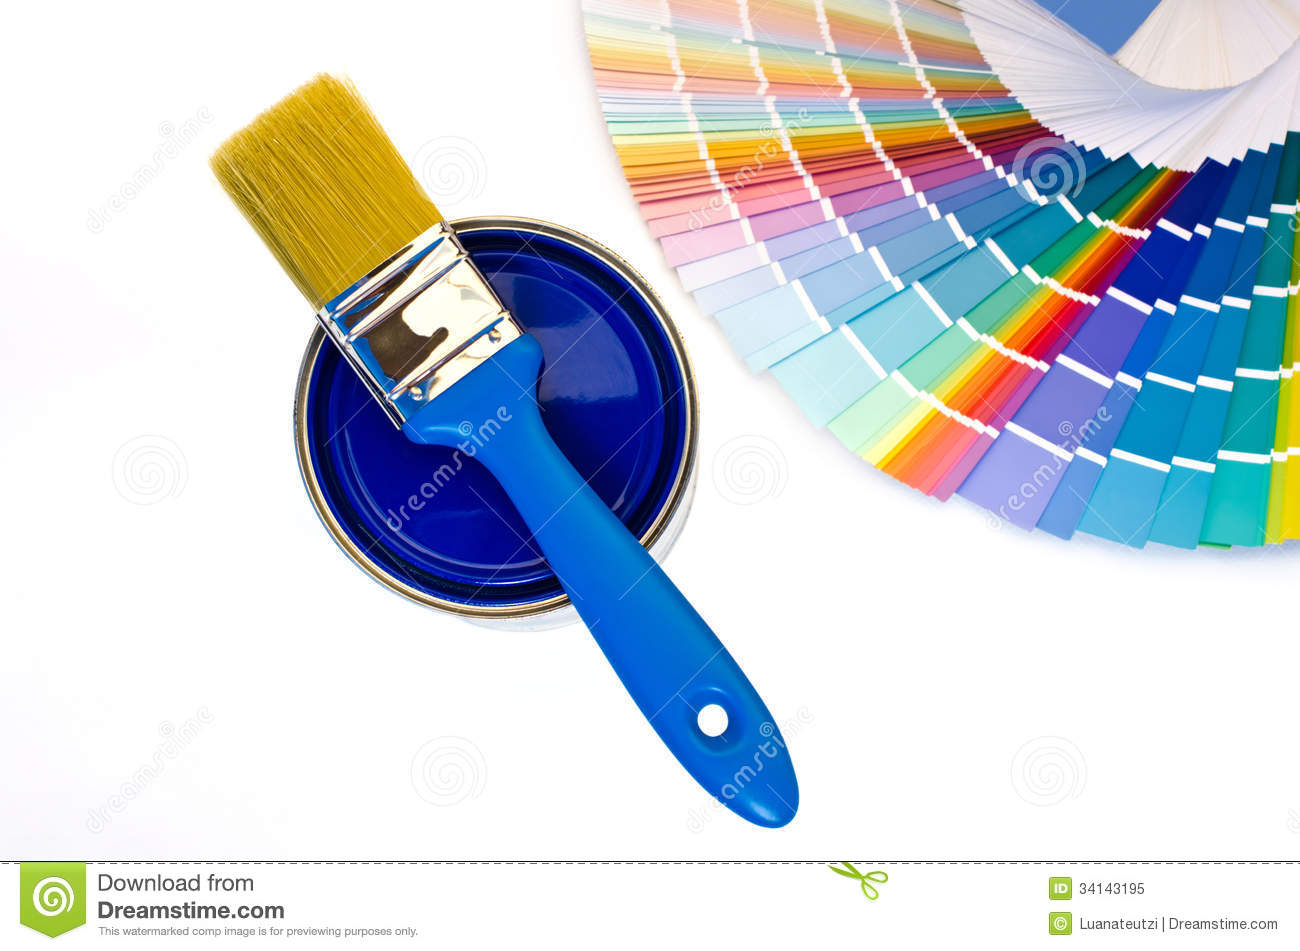 Blue paint samples - Royalty Free Stock Photo